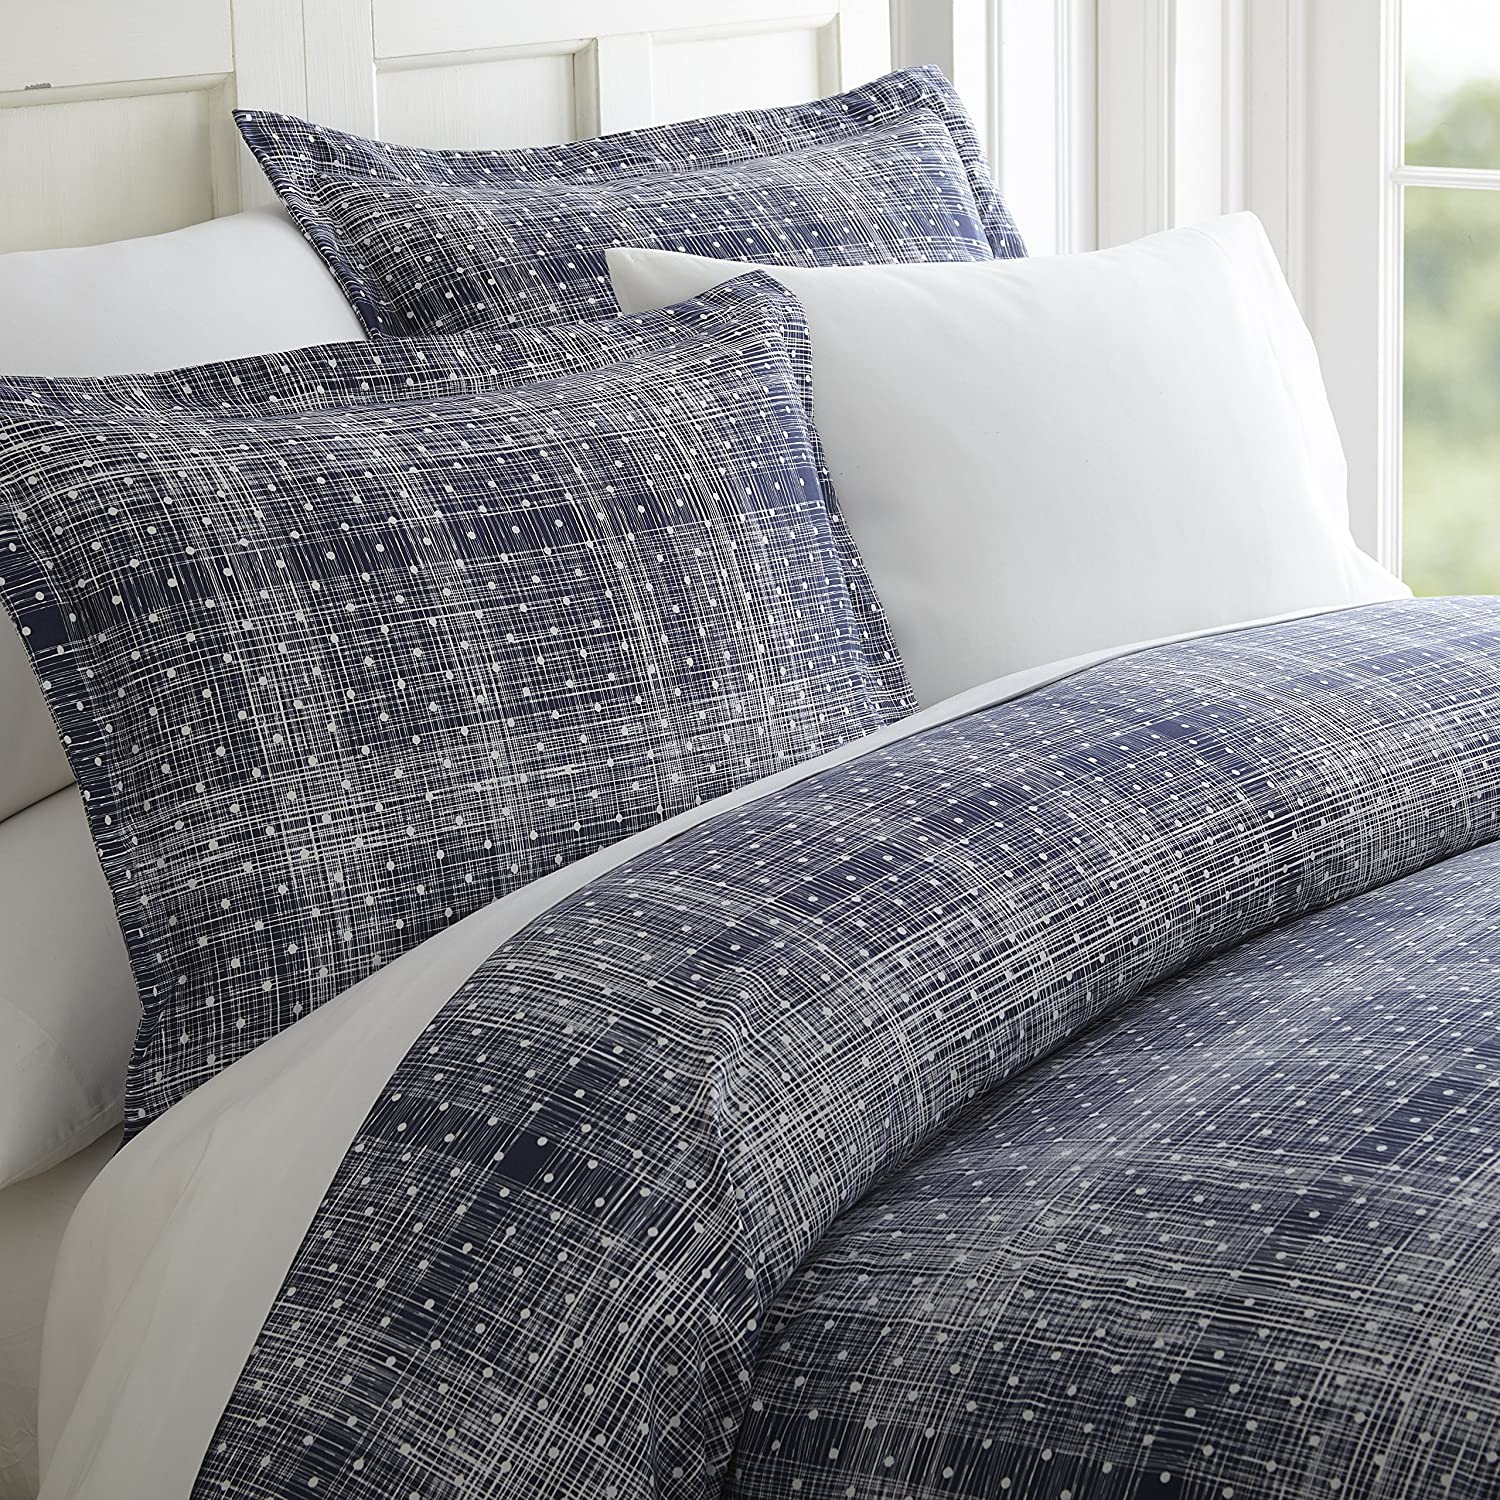 ienjoy Home Duvet Cover Set Polkadot Patterned QueenNavy